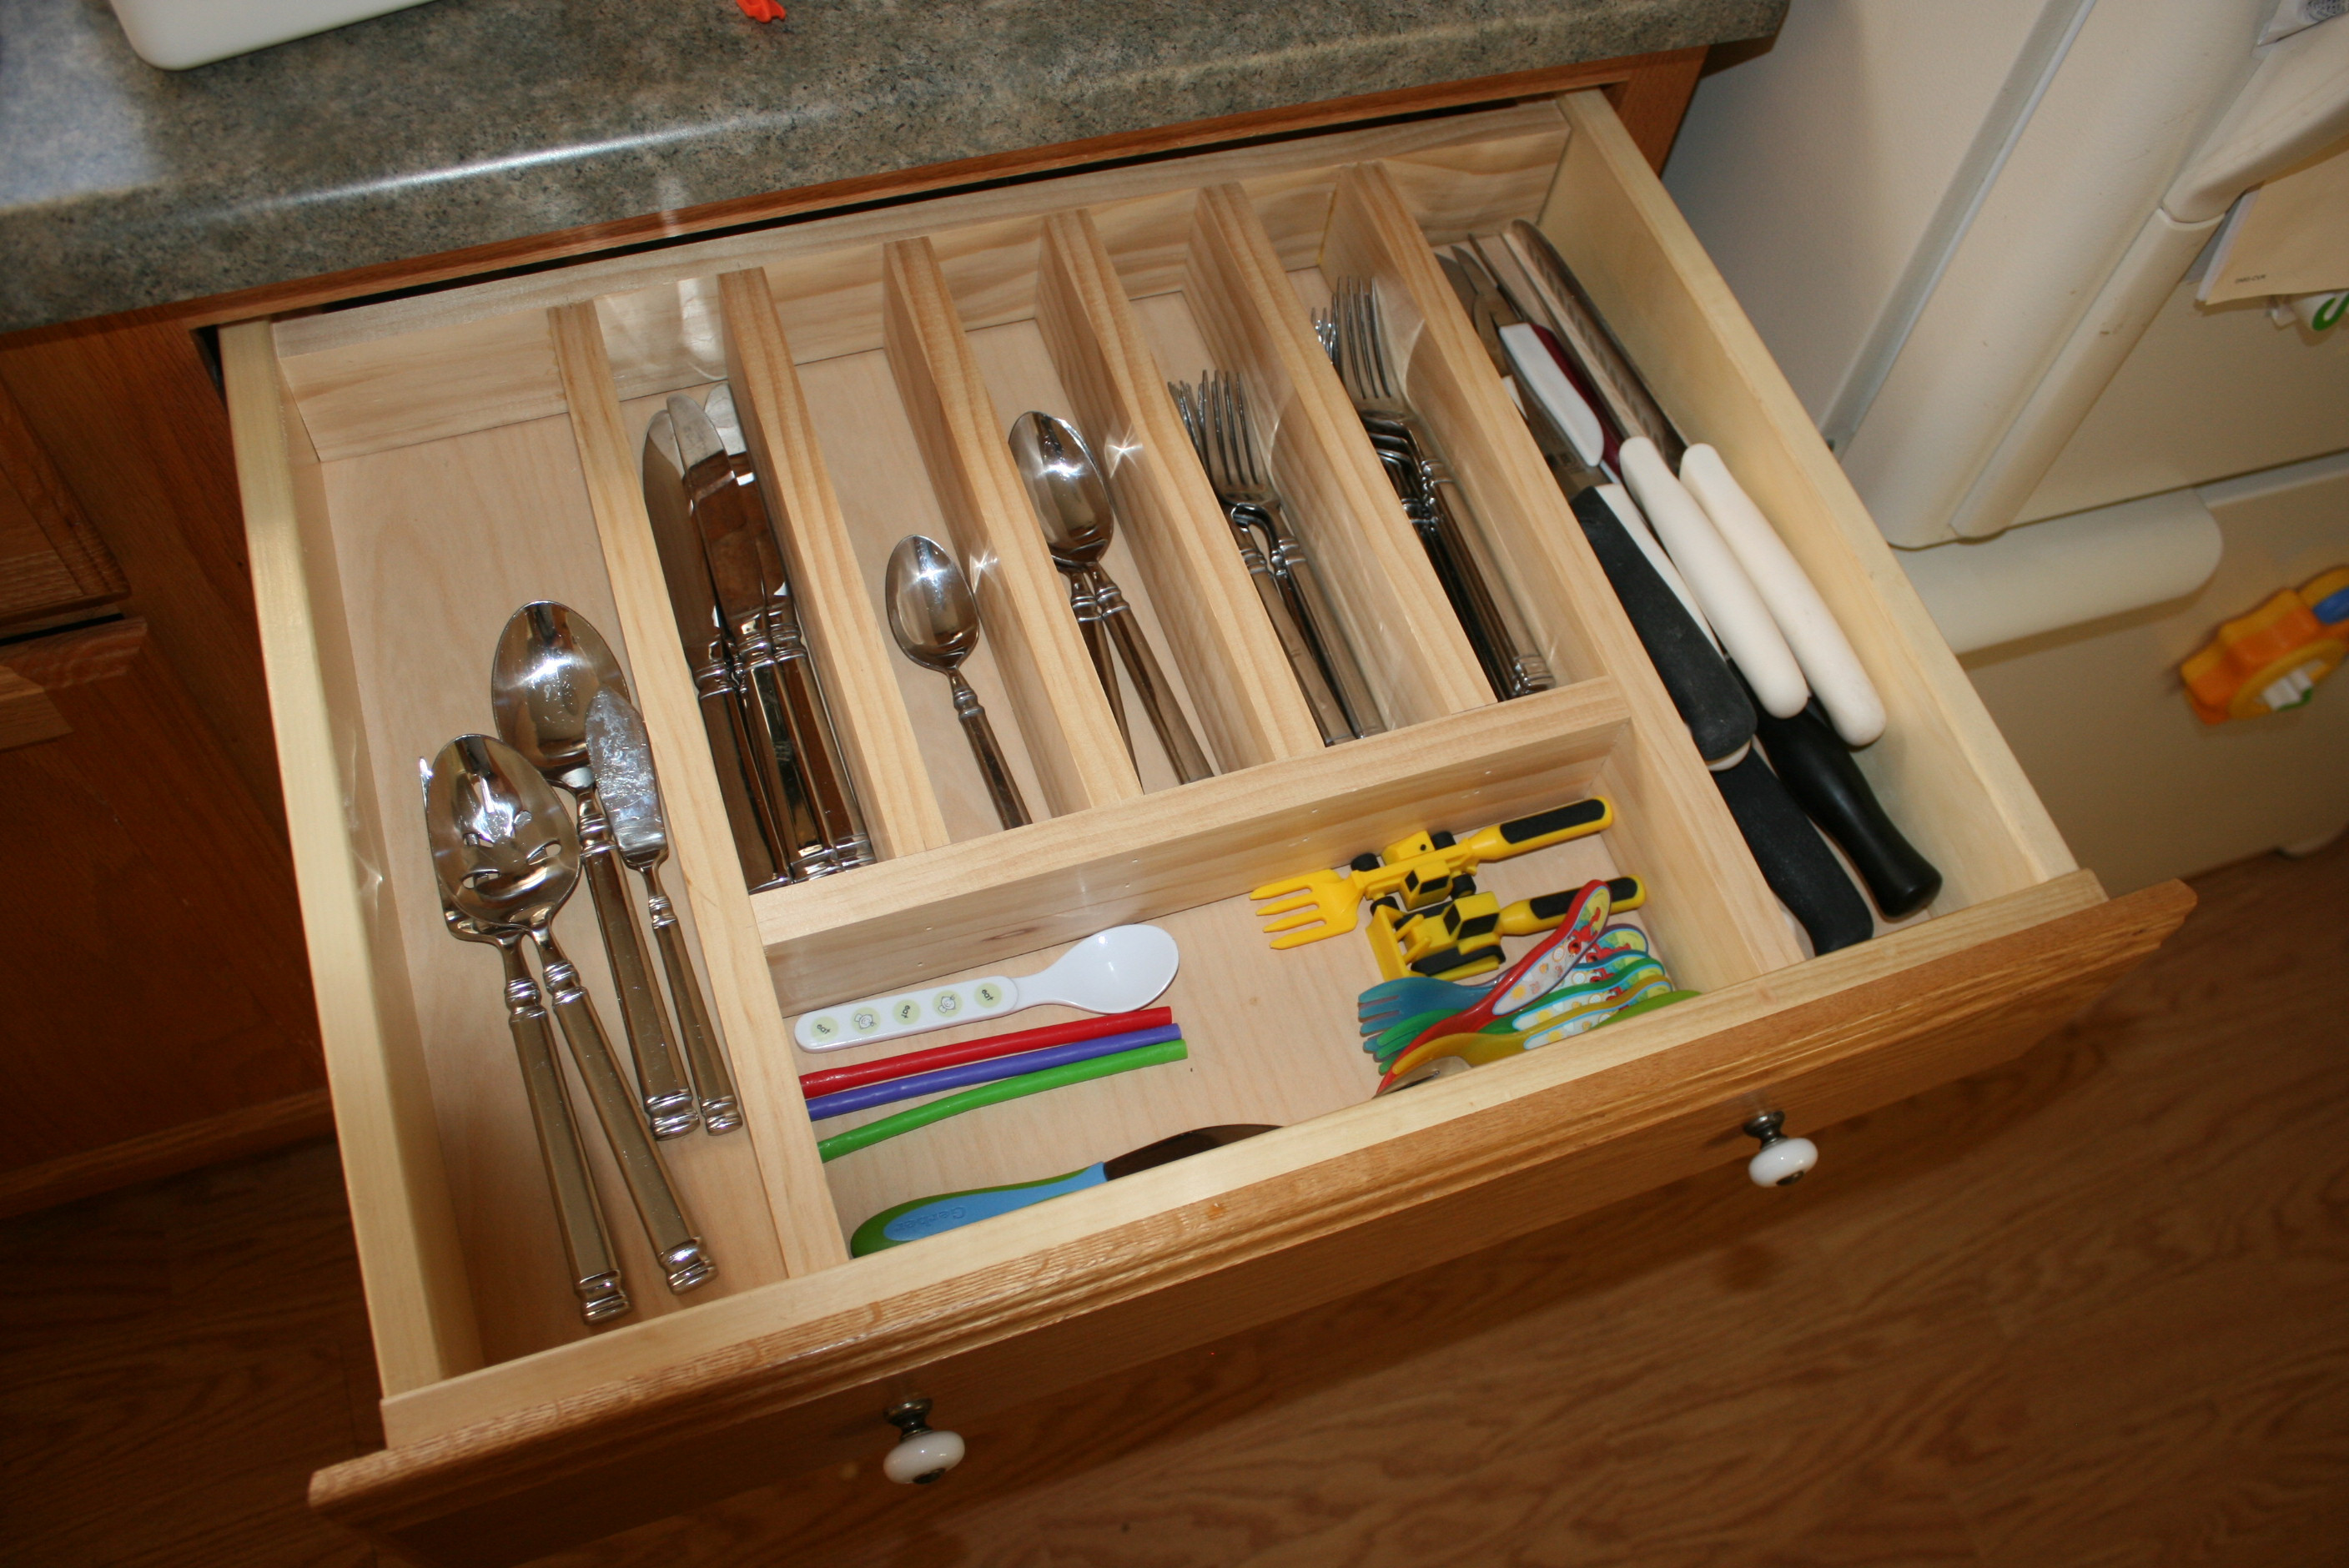 Best ideas about DIY Silverware Drawer Organizer . Save or Pin Ana White Now.